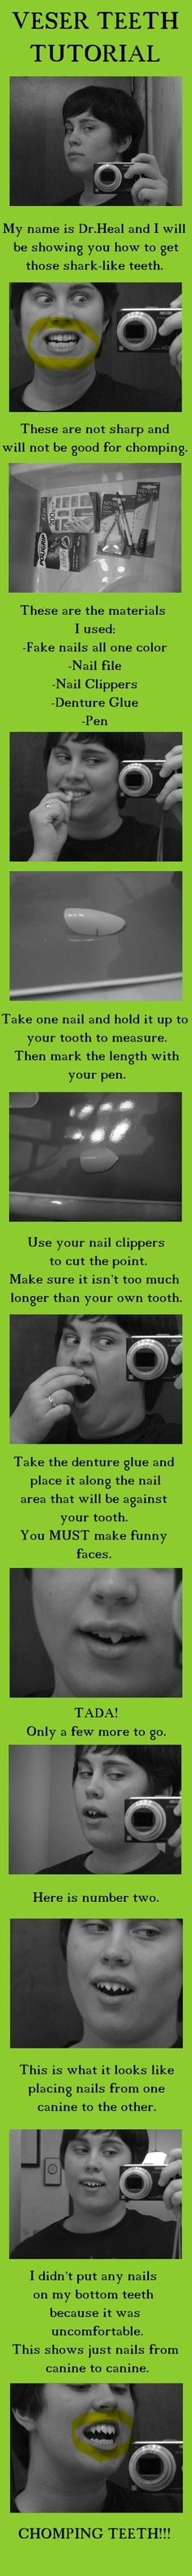 Sharp Teeth Tutorial for cosplays. Uses fake nails, nail file and clippers, and denture gel.